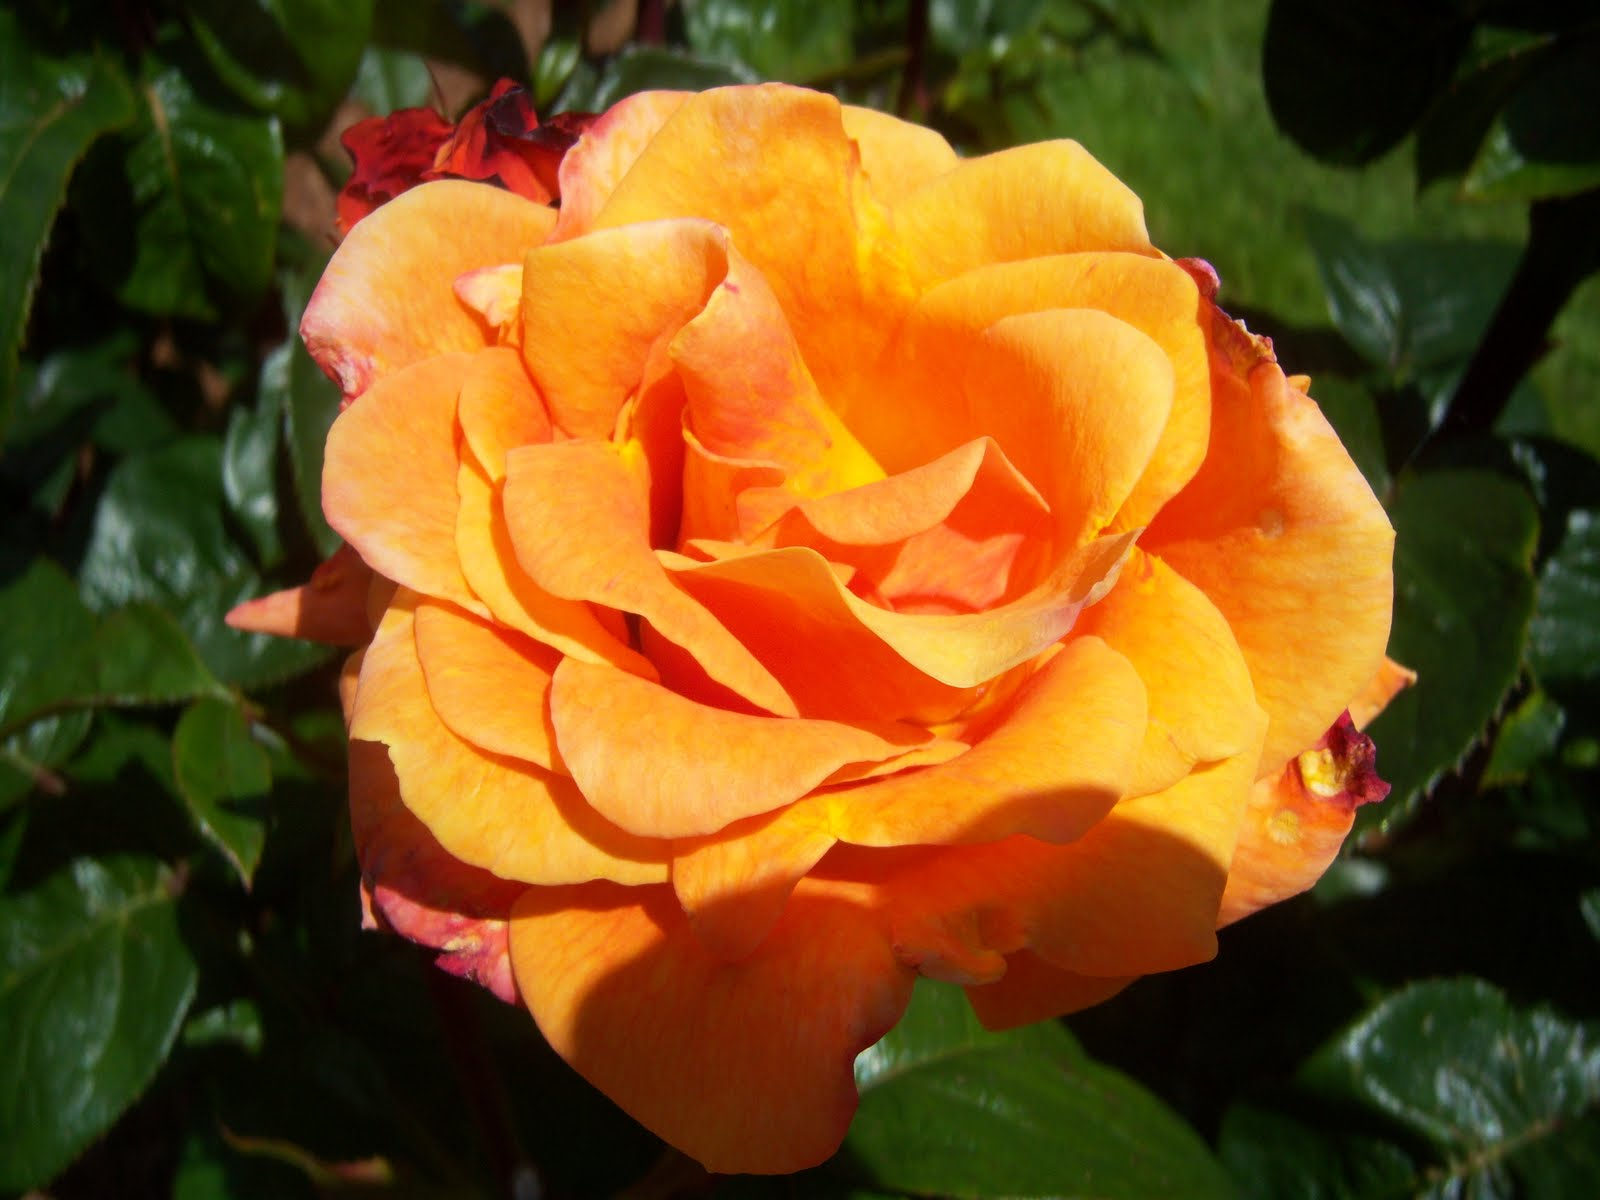 Searching for Rosebud: The Most Beautiful Rose Garden in ...